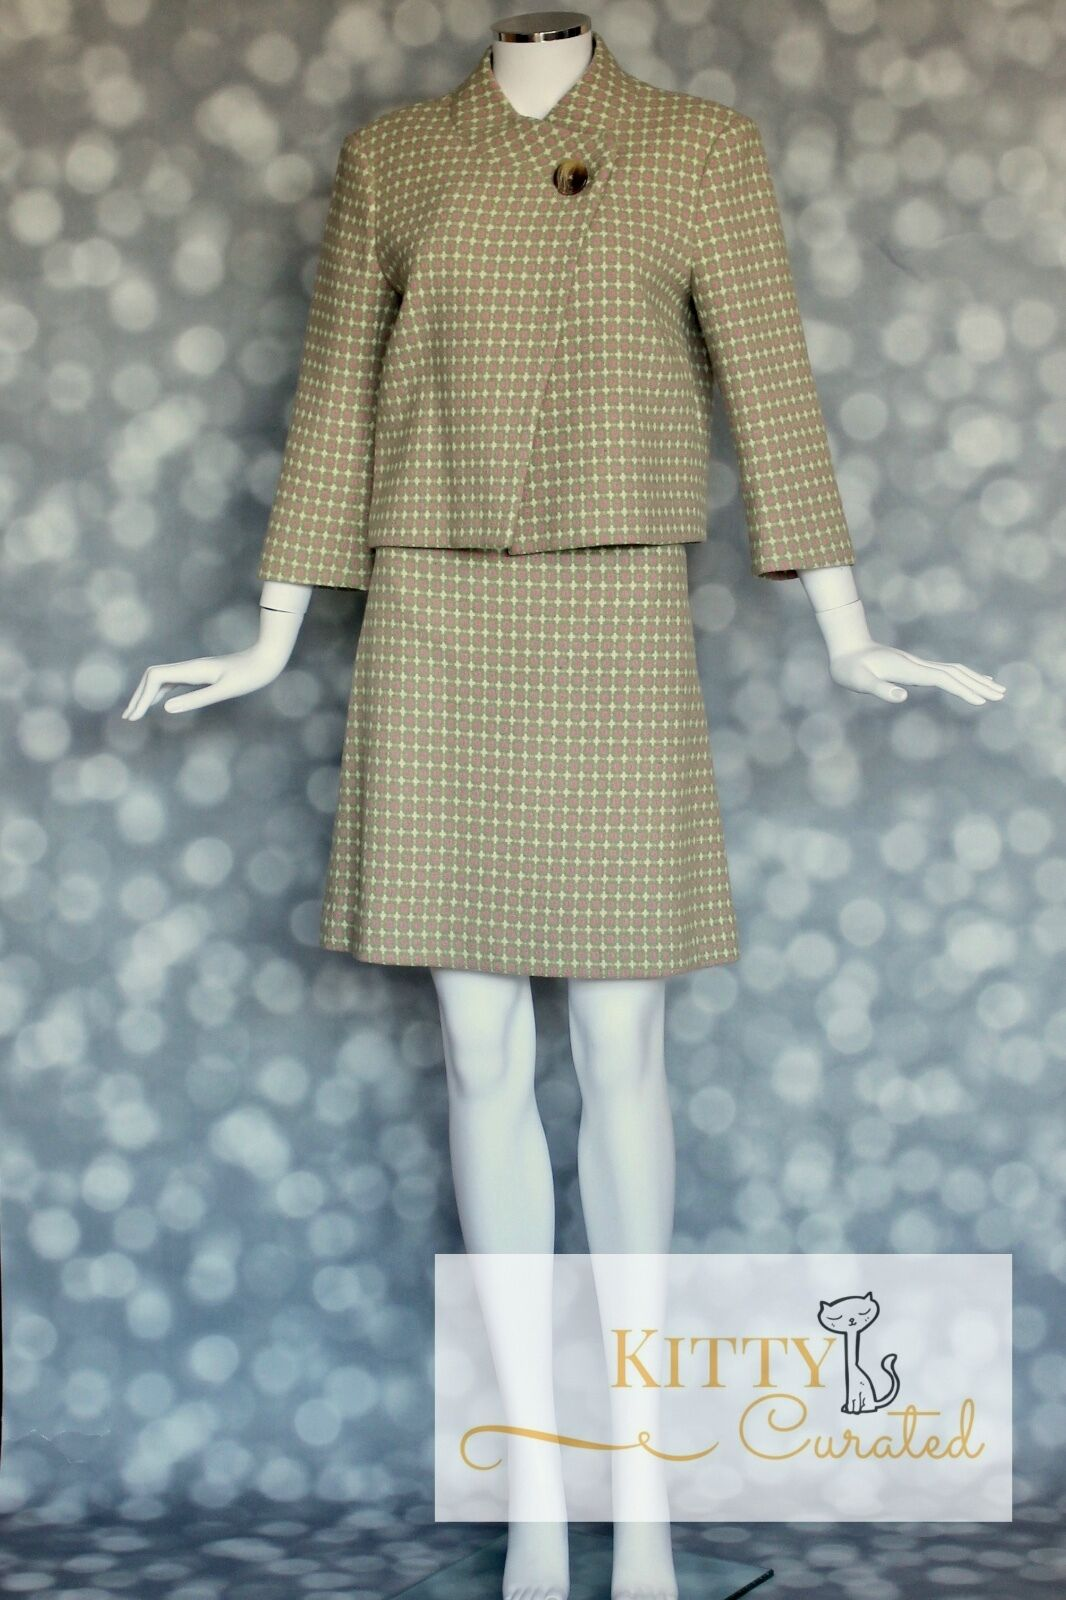 Lilly Pulitzer Vintage 1990's Printed Wool Skirt Suit - Sz 10